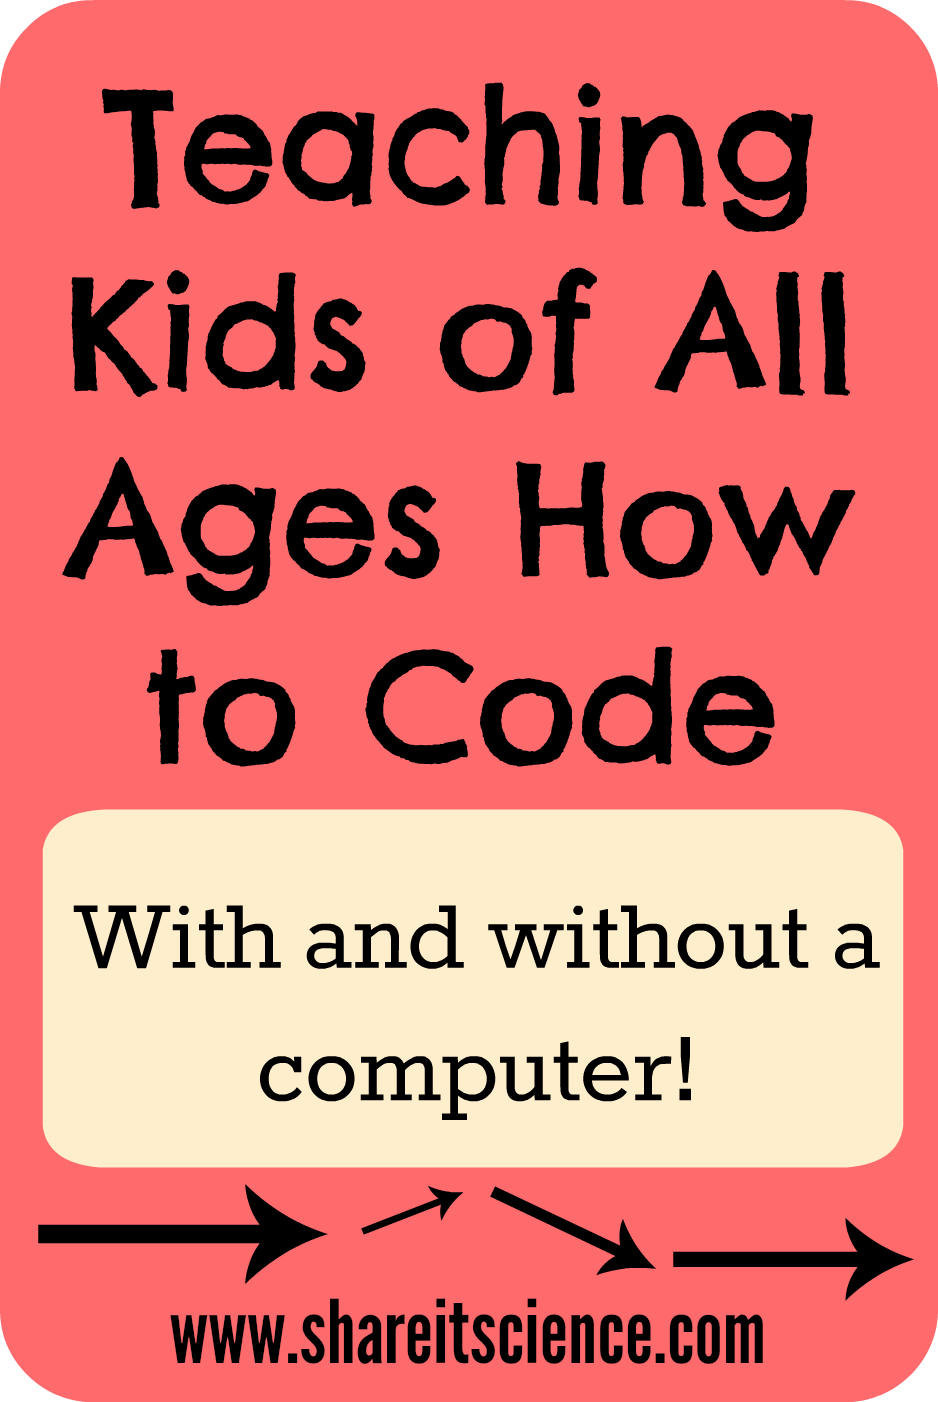 Share it! Science : Teaching Kids of All Ages How to Code